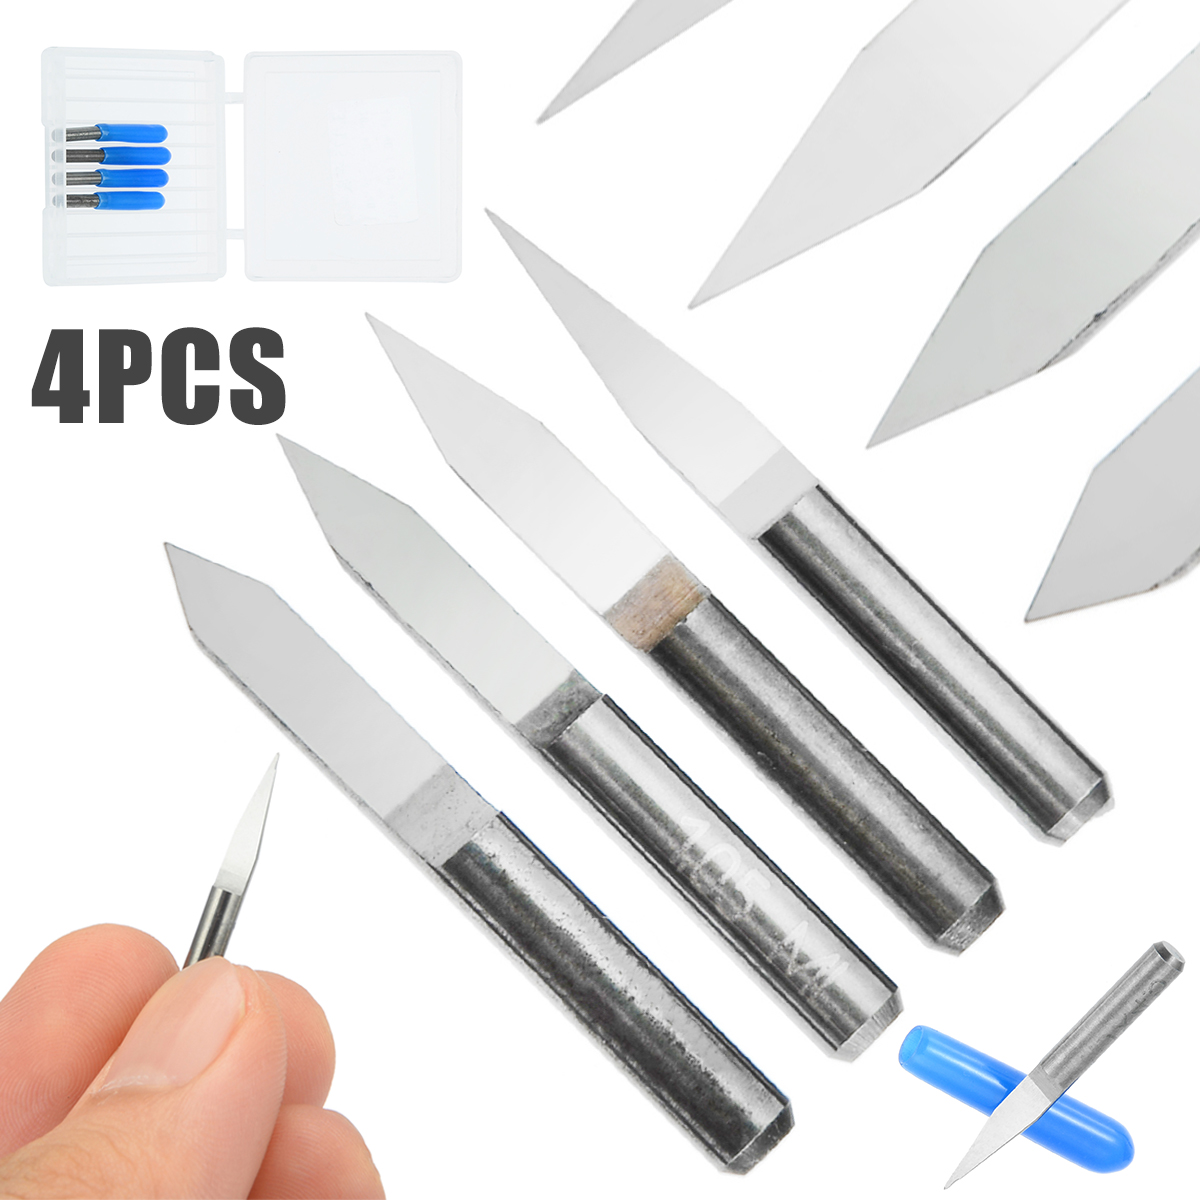 4PCS Carbide Engraving Bits Set PCB Board 3.175mm 20 30 40 60 Degree Engraving Cutters CNC Router Tool For Plastics Wood